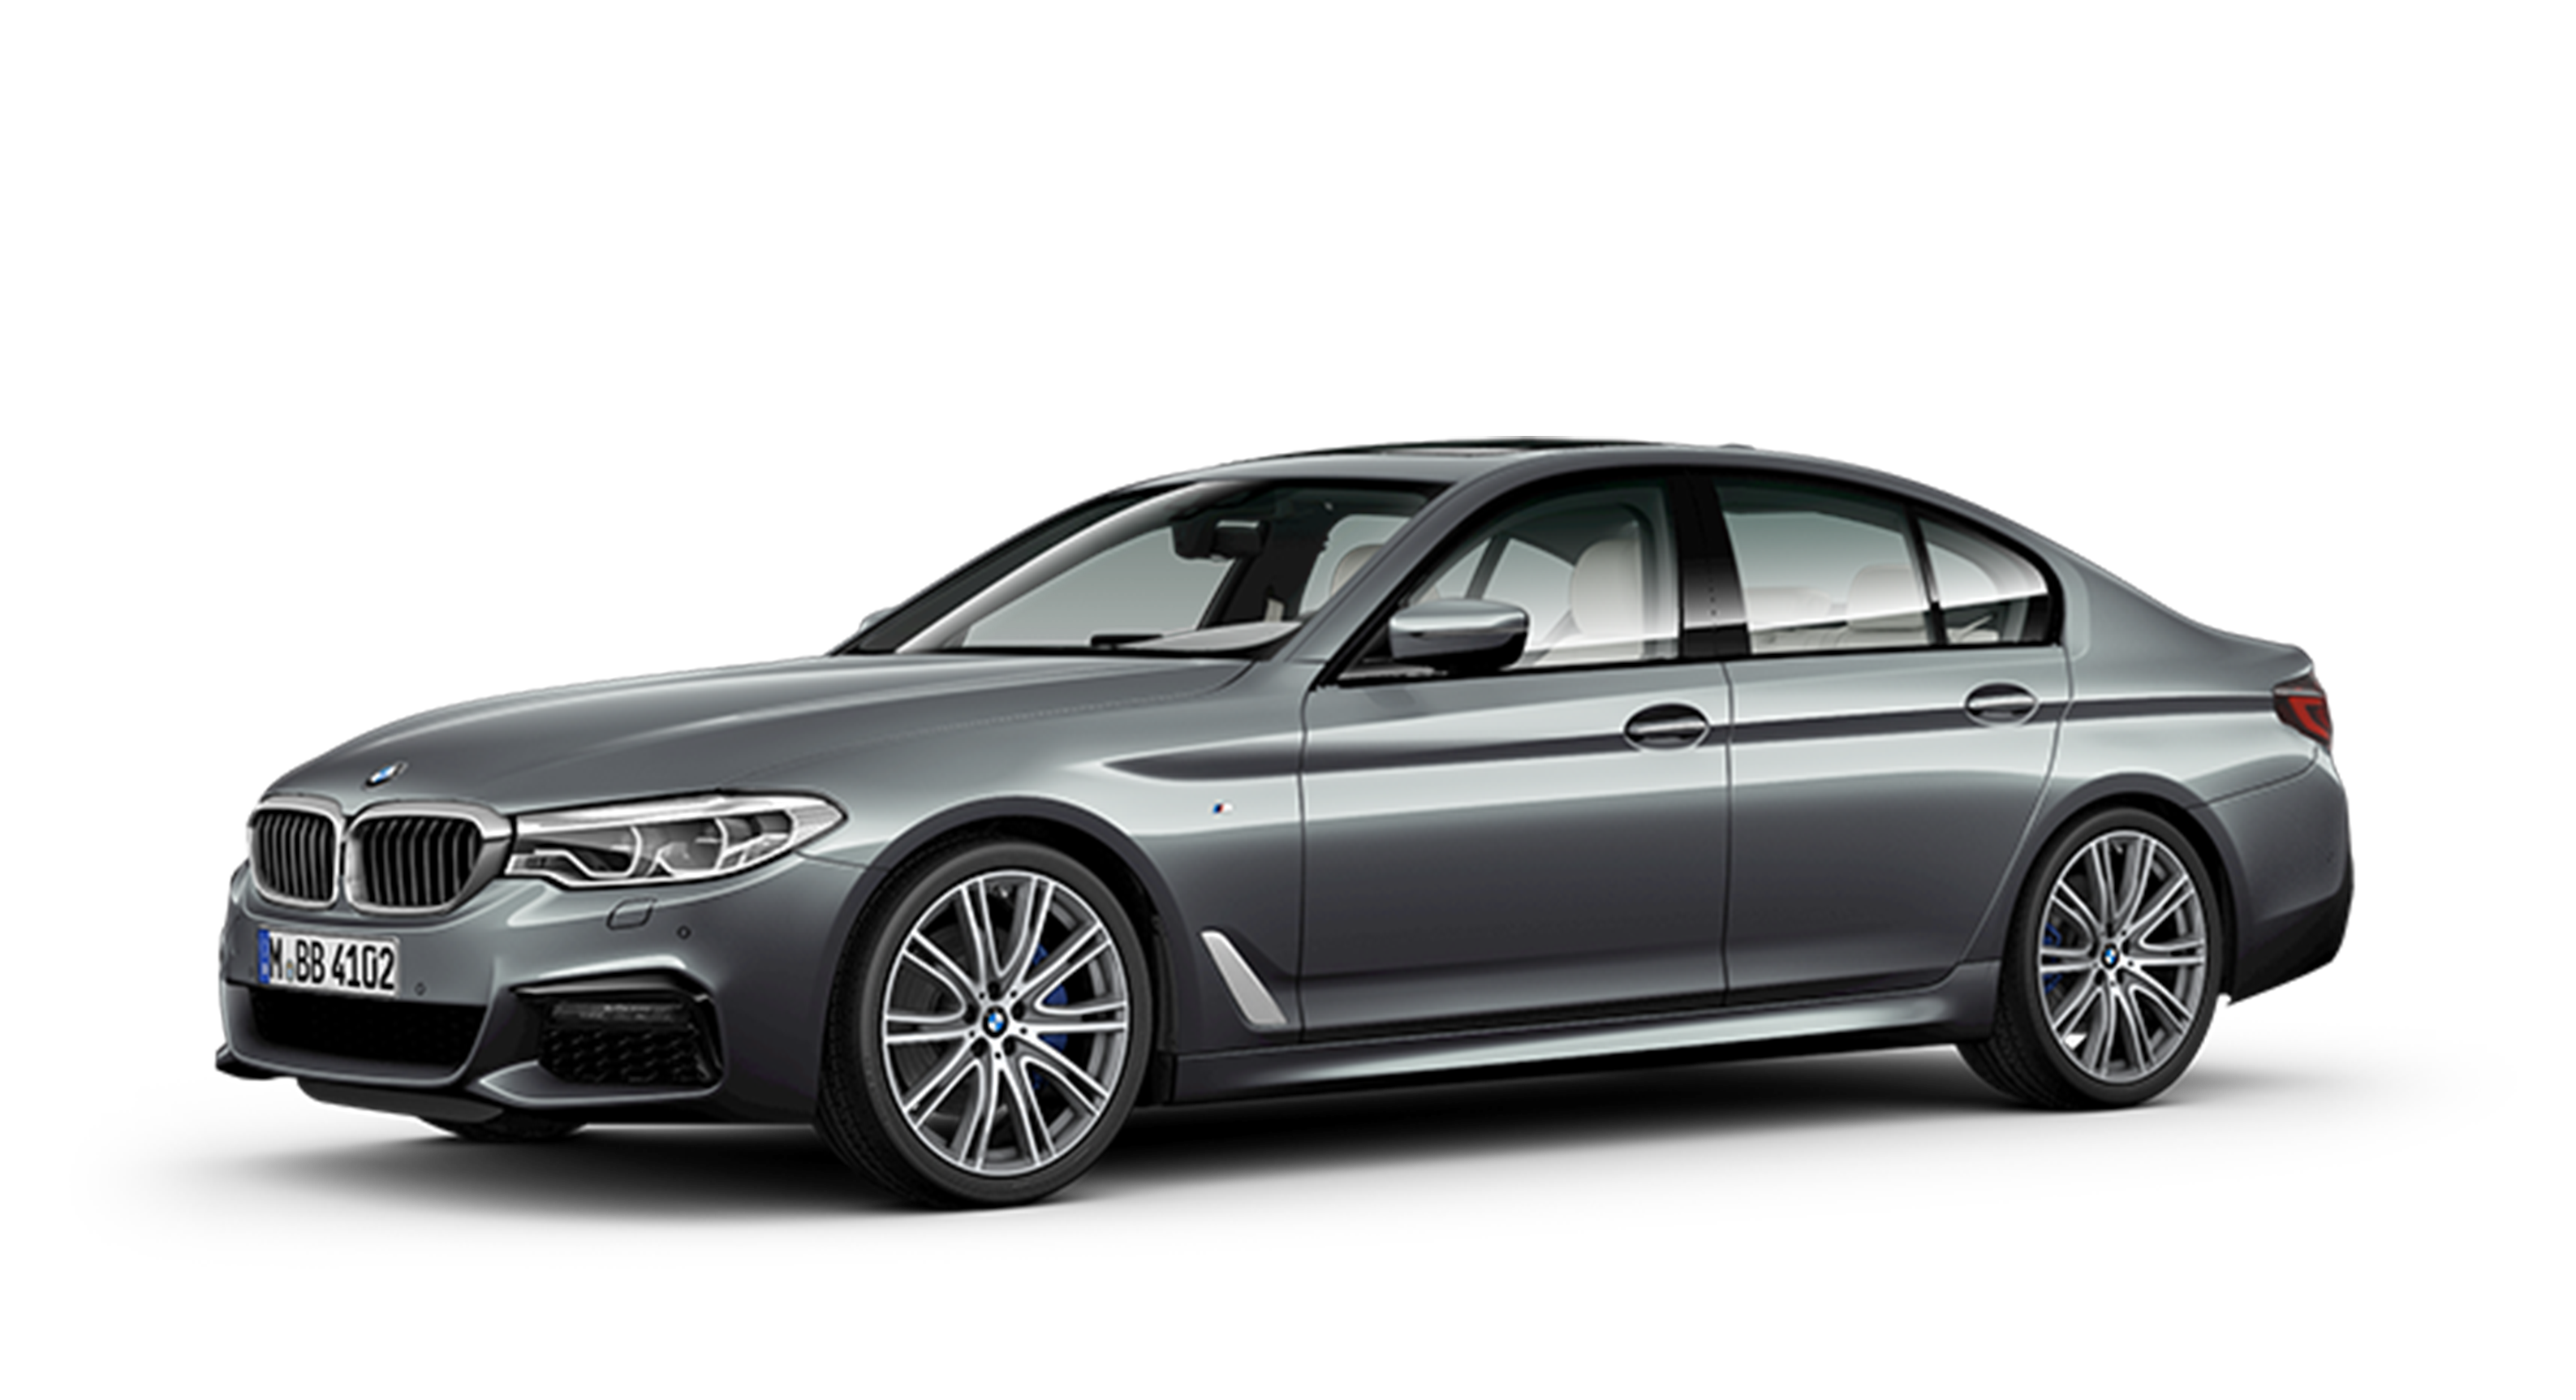 Top 3 Luxury Sedan Cars 2016: Top 5 Large Cars